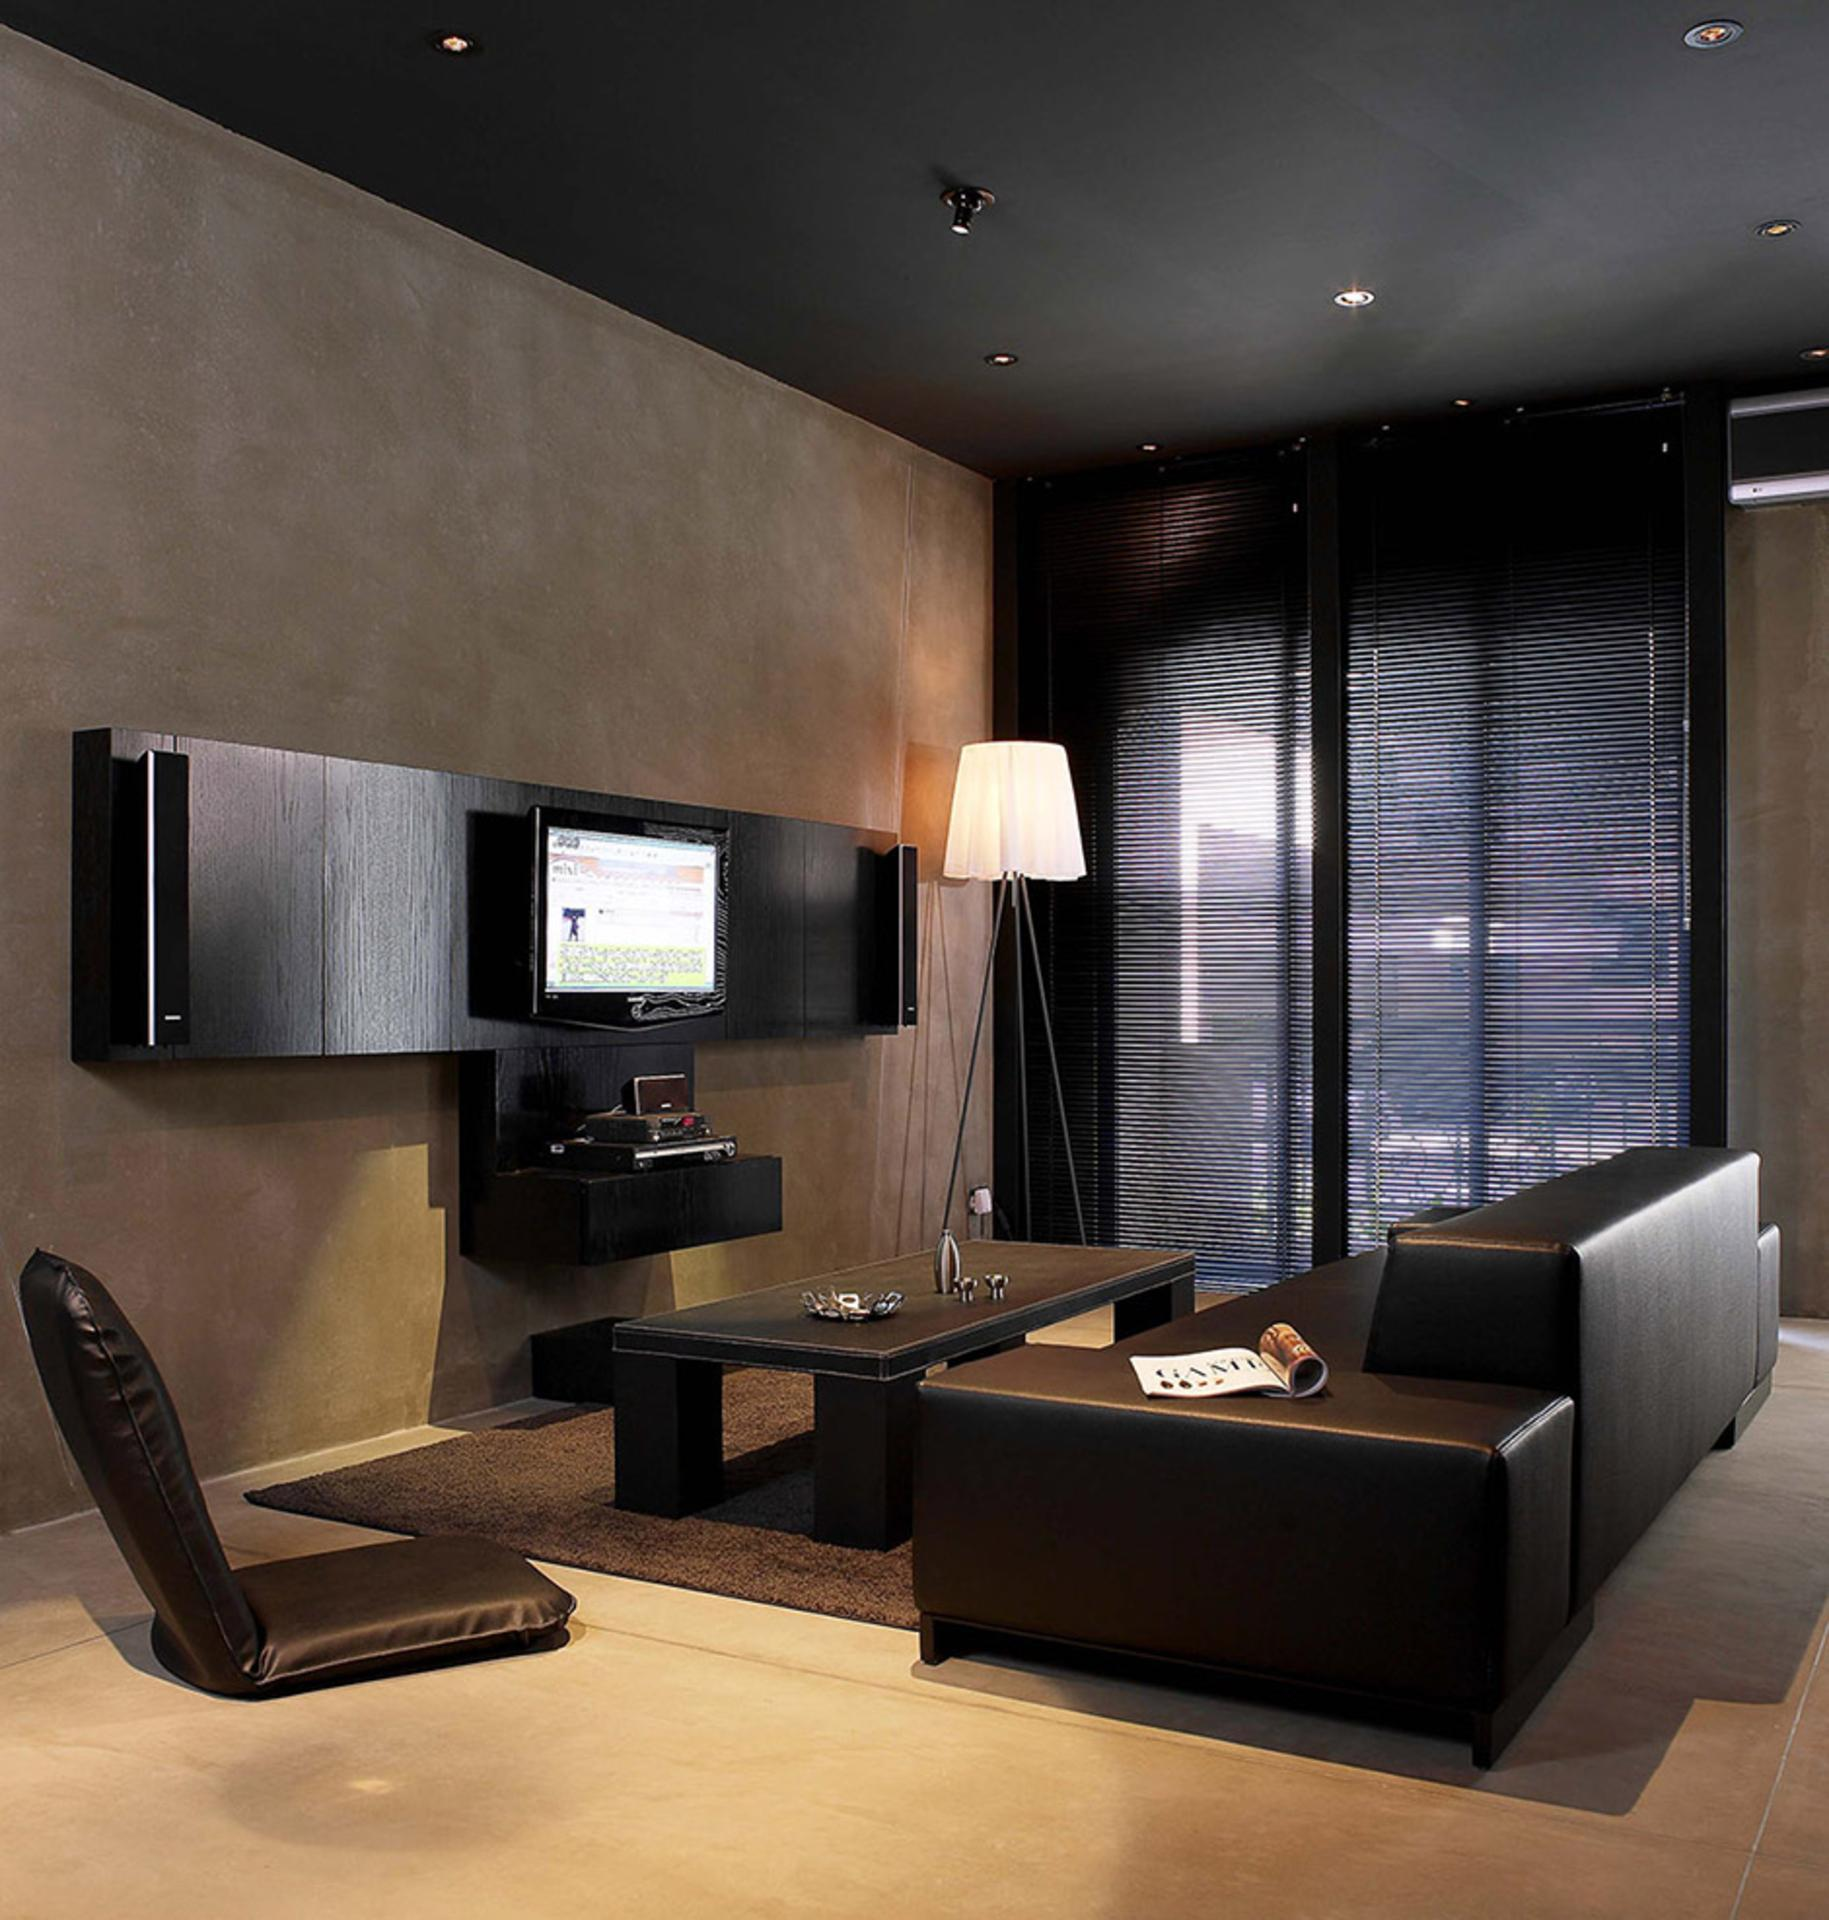 charming bachelor pad home design. Black Bedroom Furniture Sets. Home Design Ideas